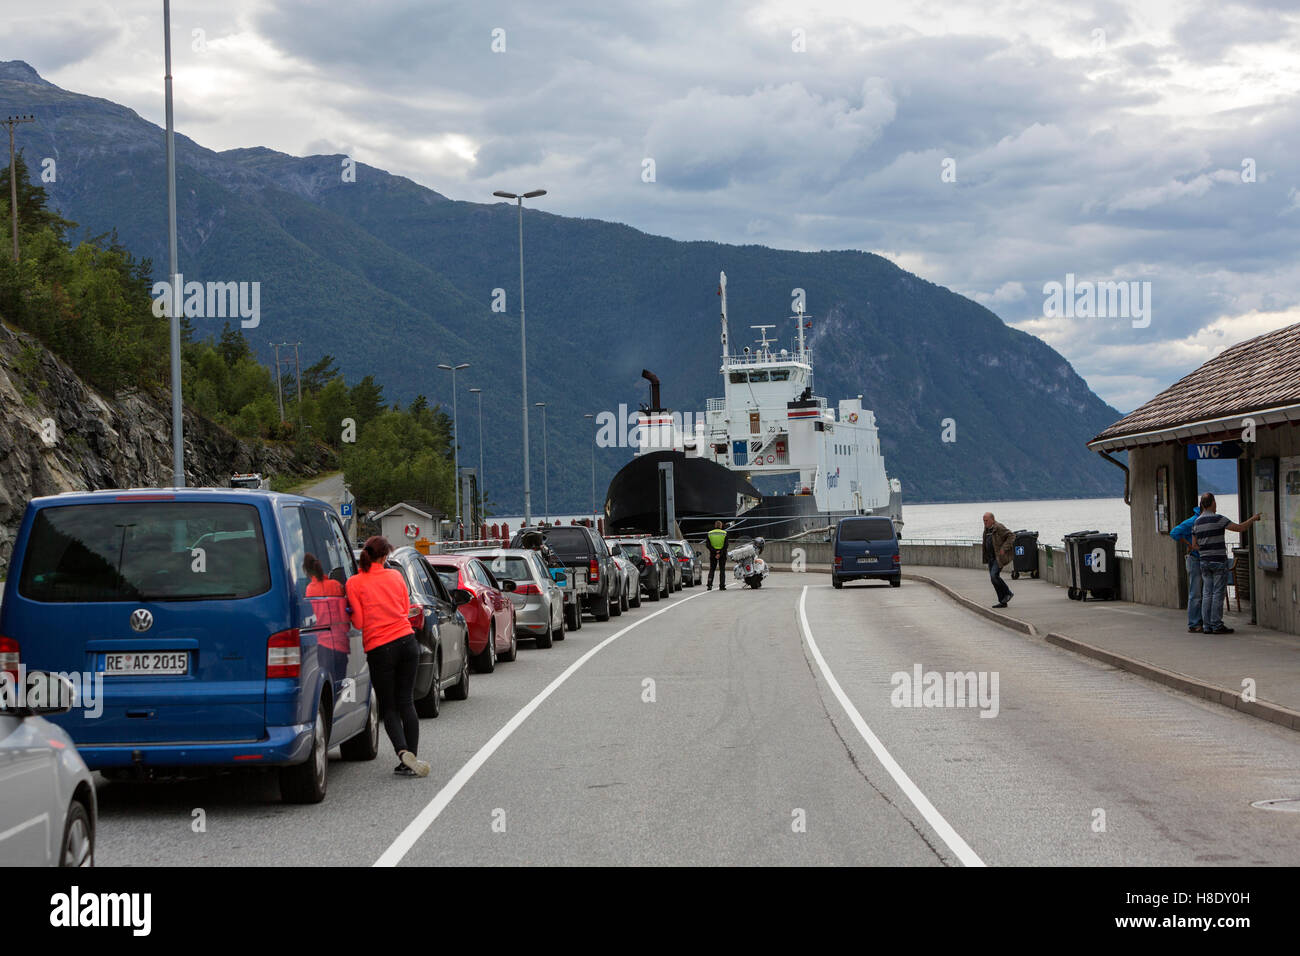 Car ferries sognefjord norway - Cars Queuing To Enter In The Gudvangen Kaupanger Car Ferry Crossing Sognefjord Norway